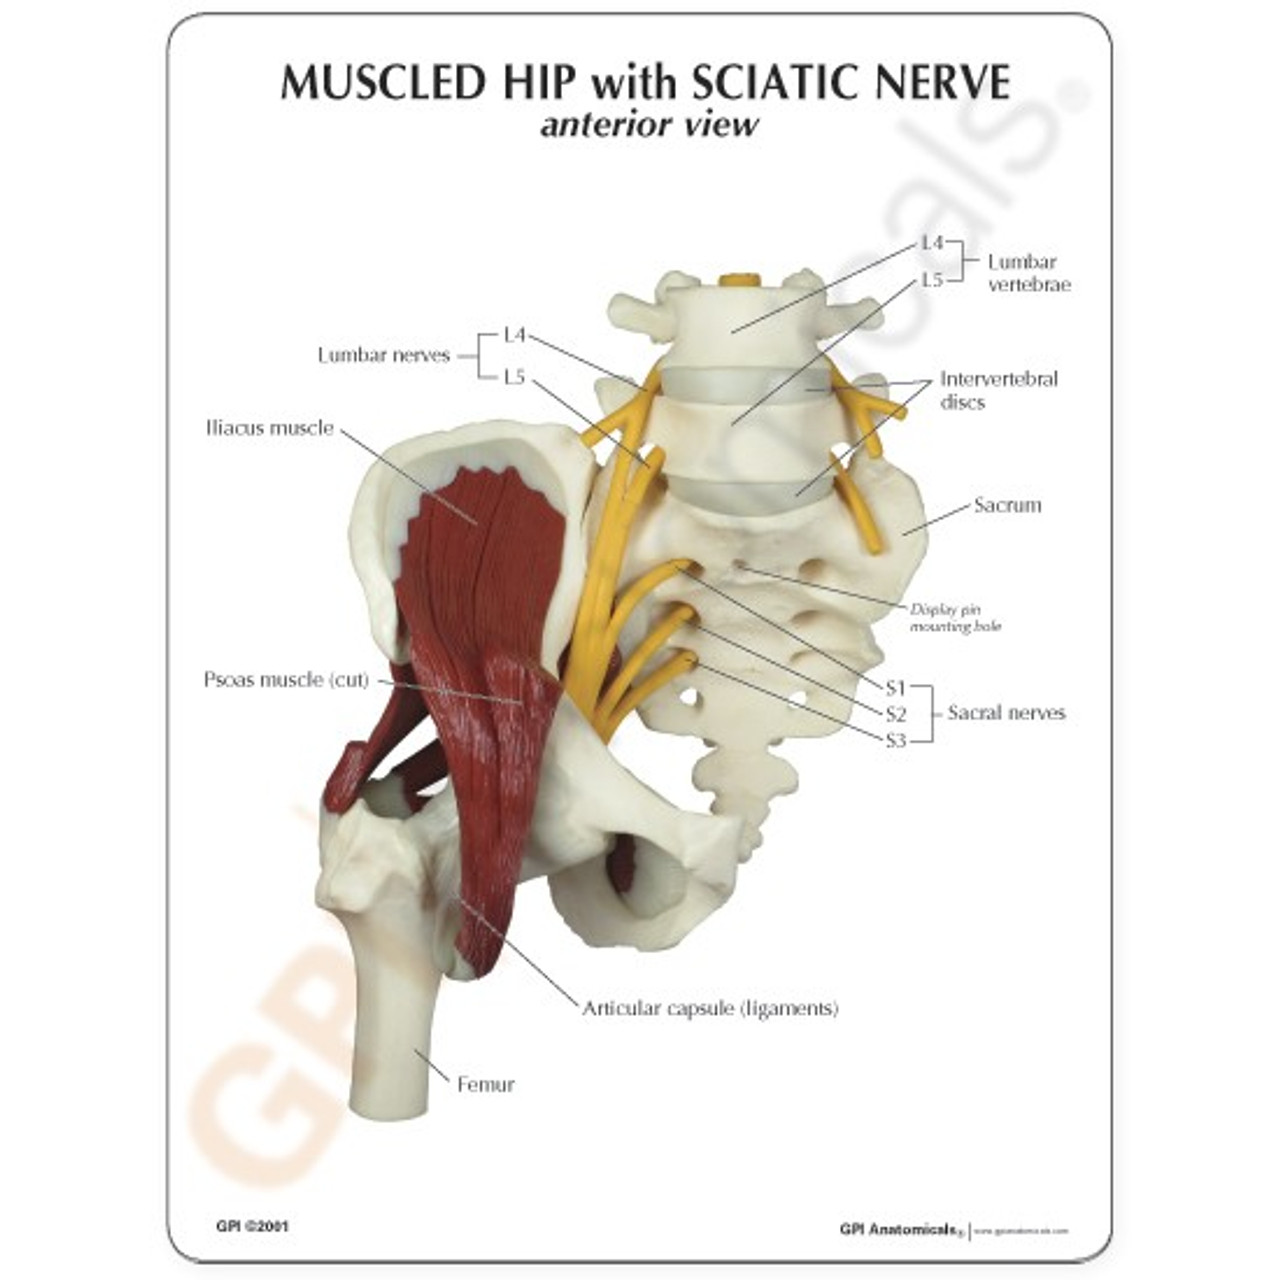 Lumbar Spine,Hip and Sciatic Nerve Model Description Card